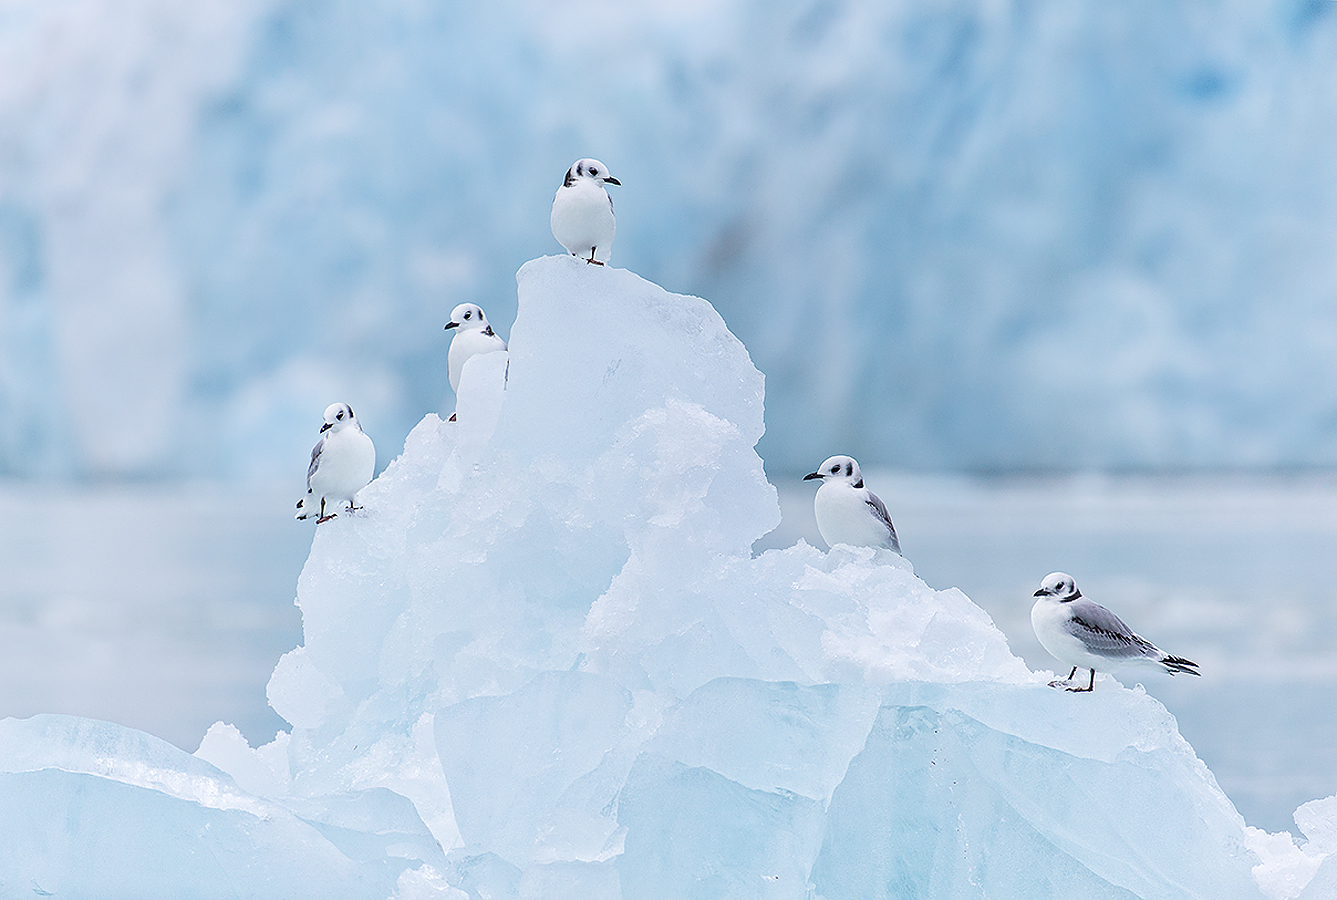 small_clemens-vanderwerf-kittiwakes-on-ice-berg-with-glacier-in-bkgd_b8r5647-lilliehookbreen-svalbard-arctic